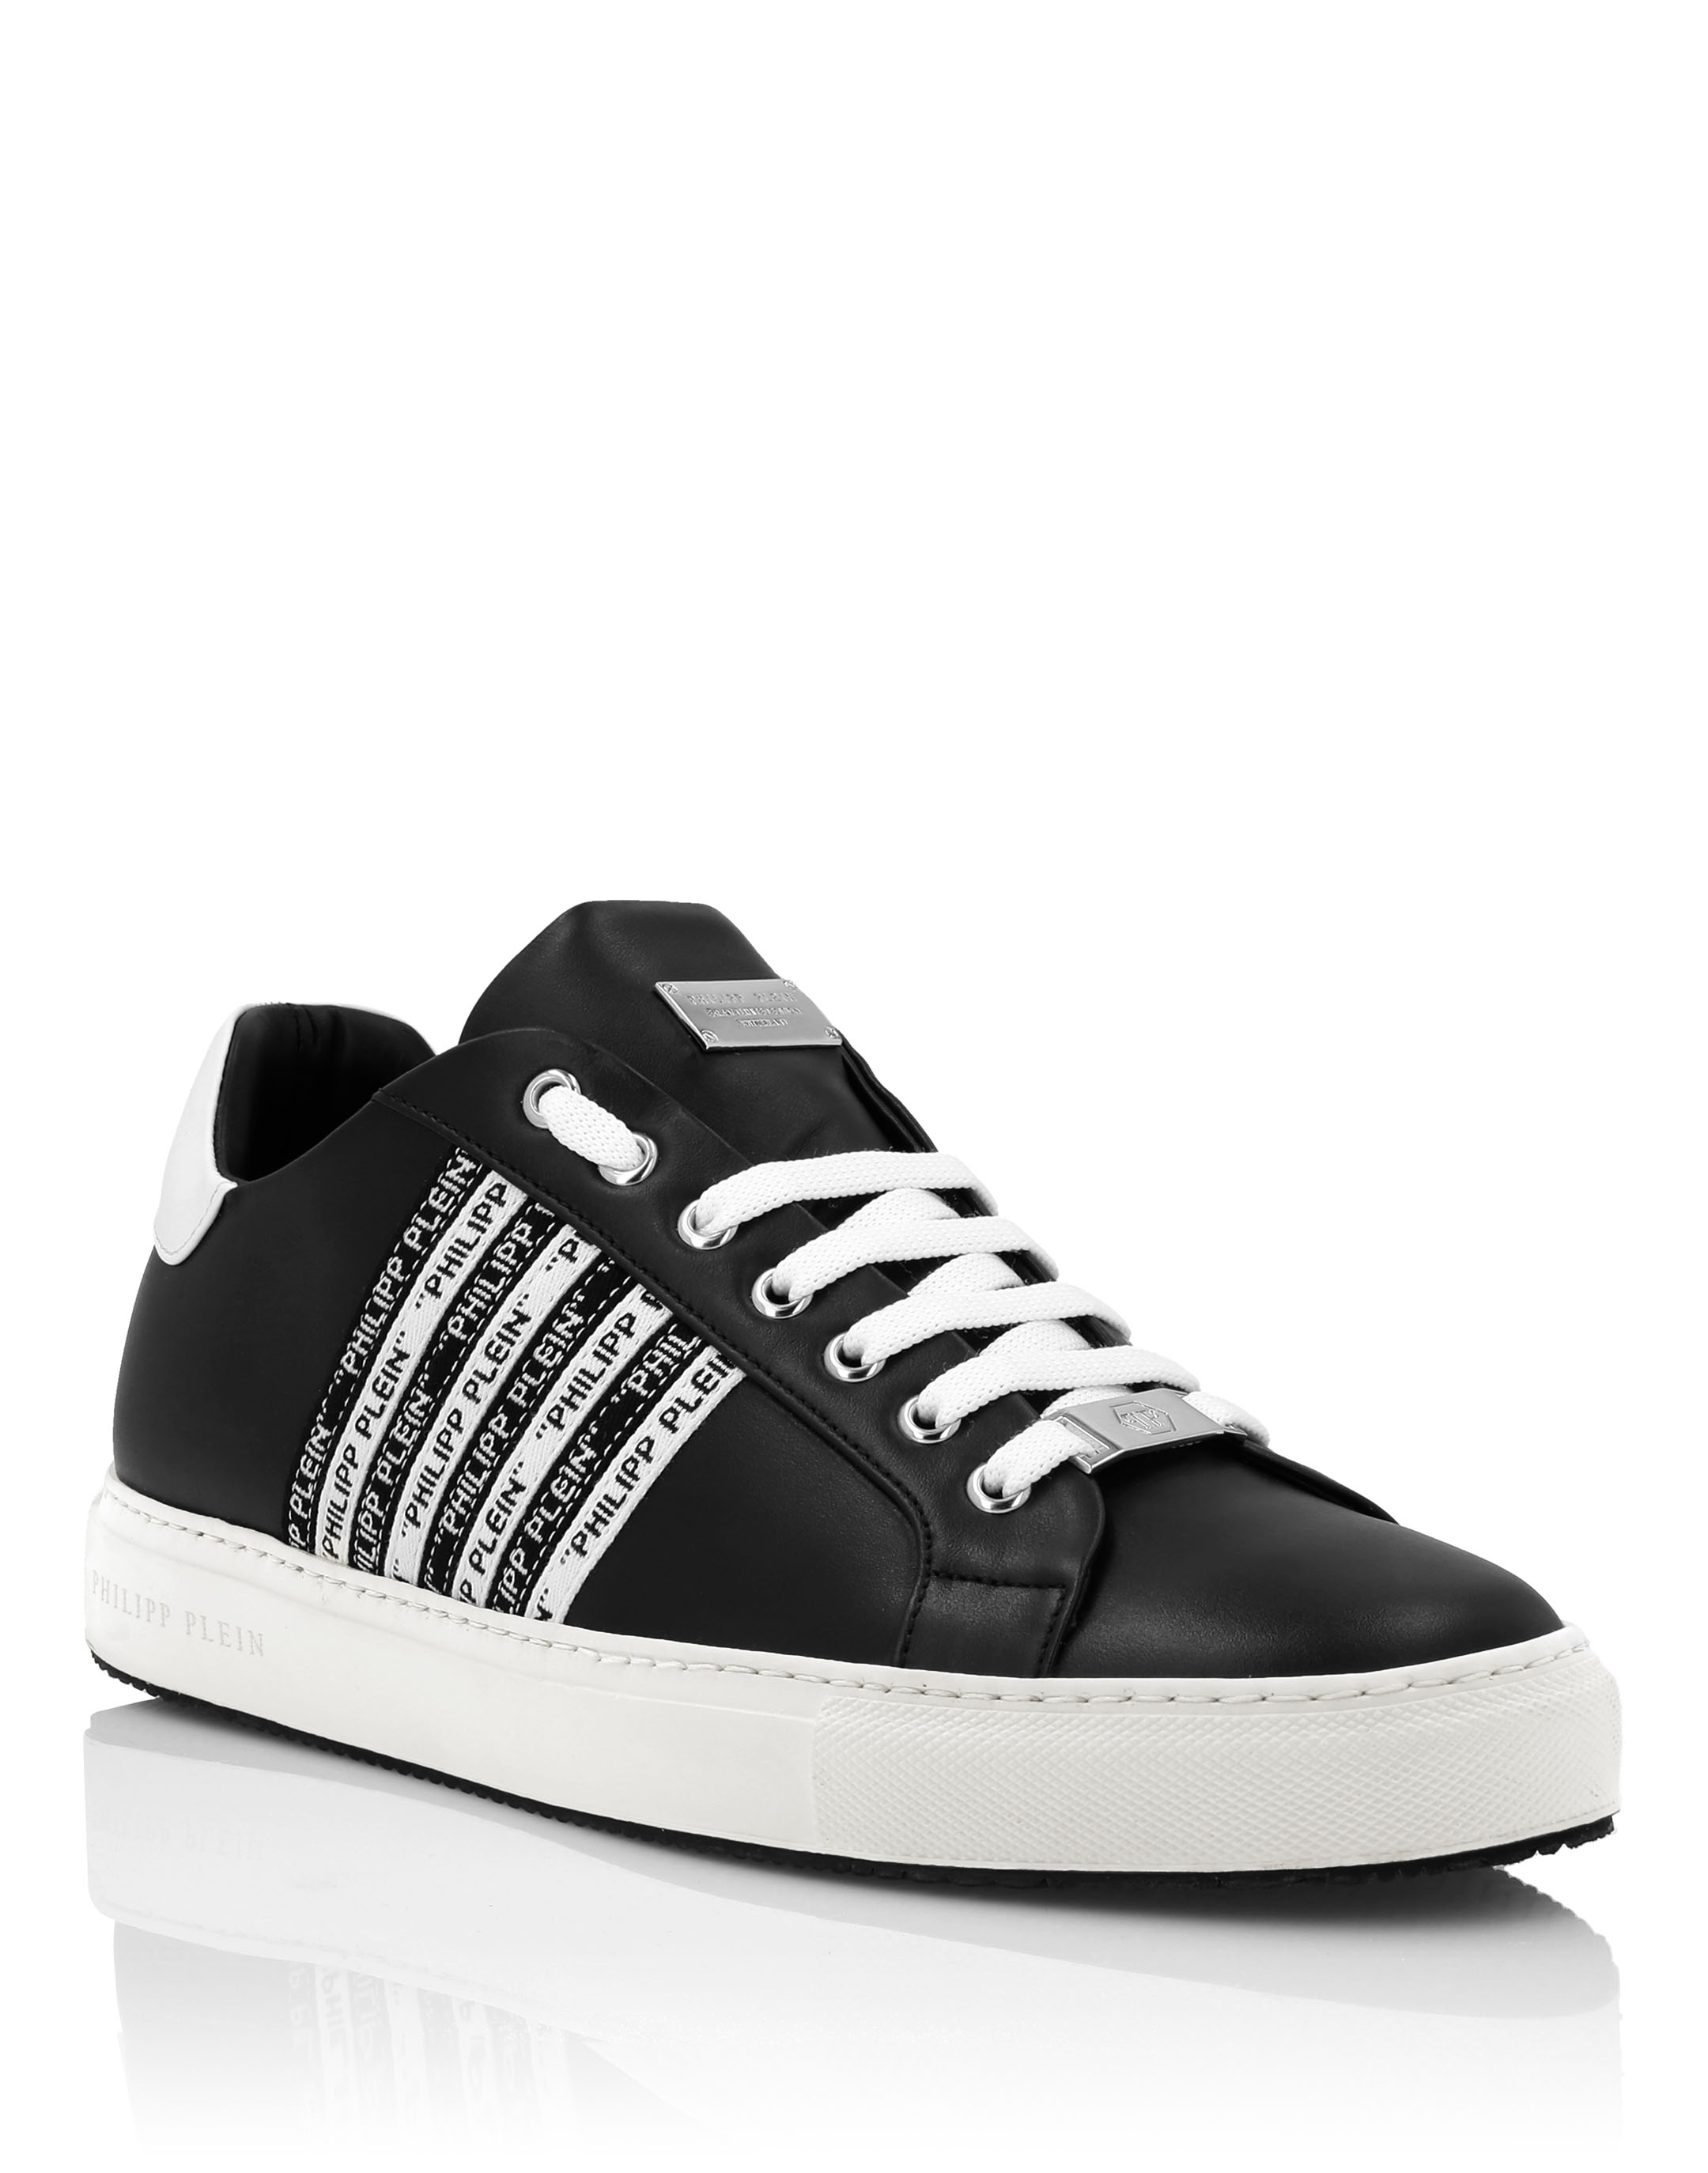 Philipp Sneakers Plein Tm Top Lo fybg7Y6